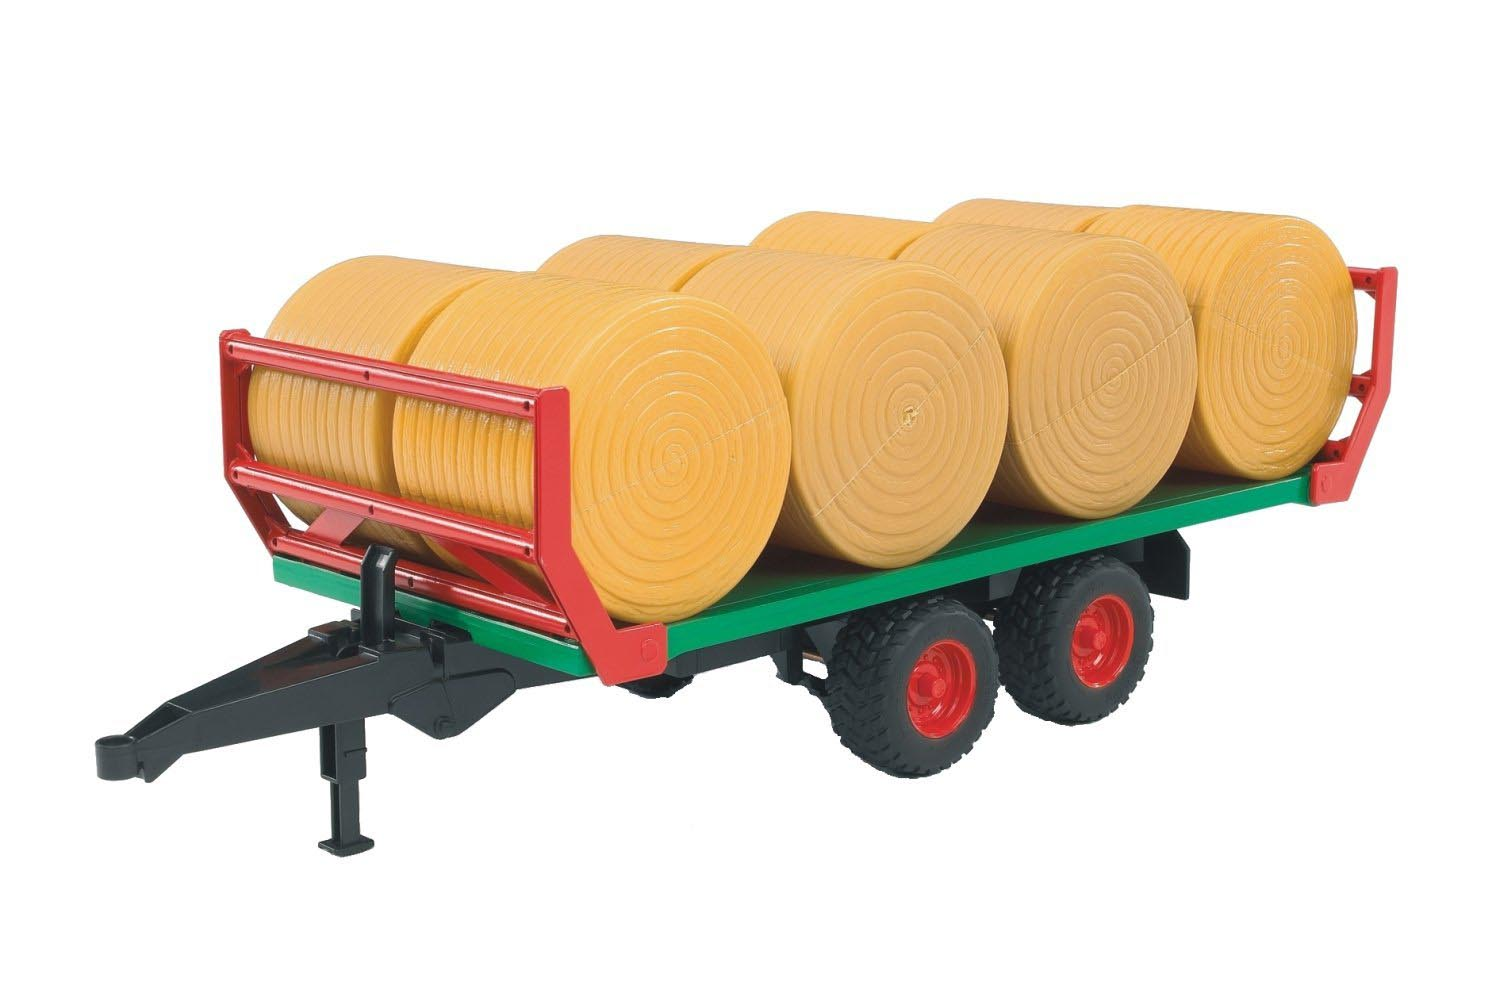 Bruder #02220 Bale Transport Trailer with 8 Round Bales! #2220